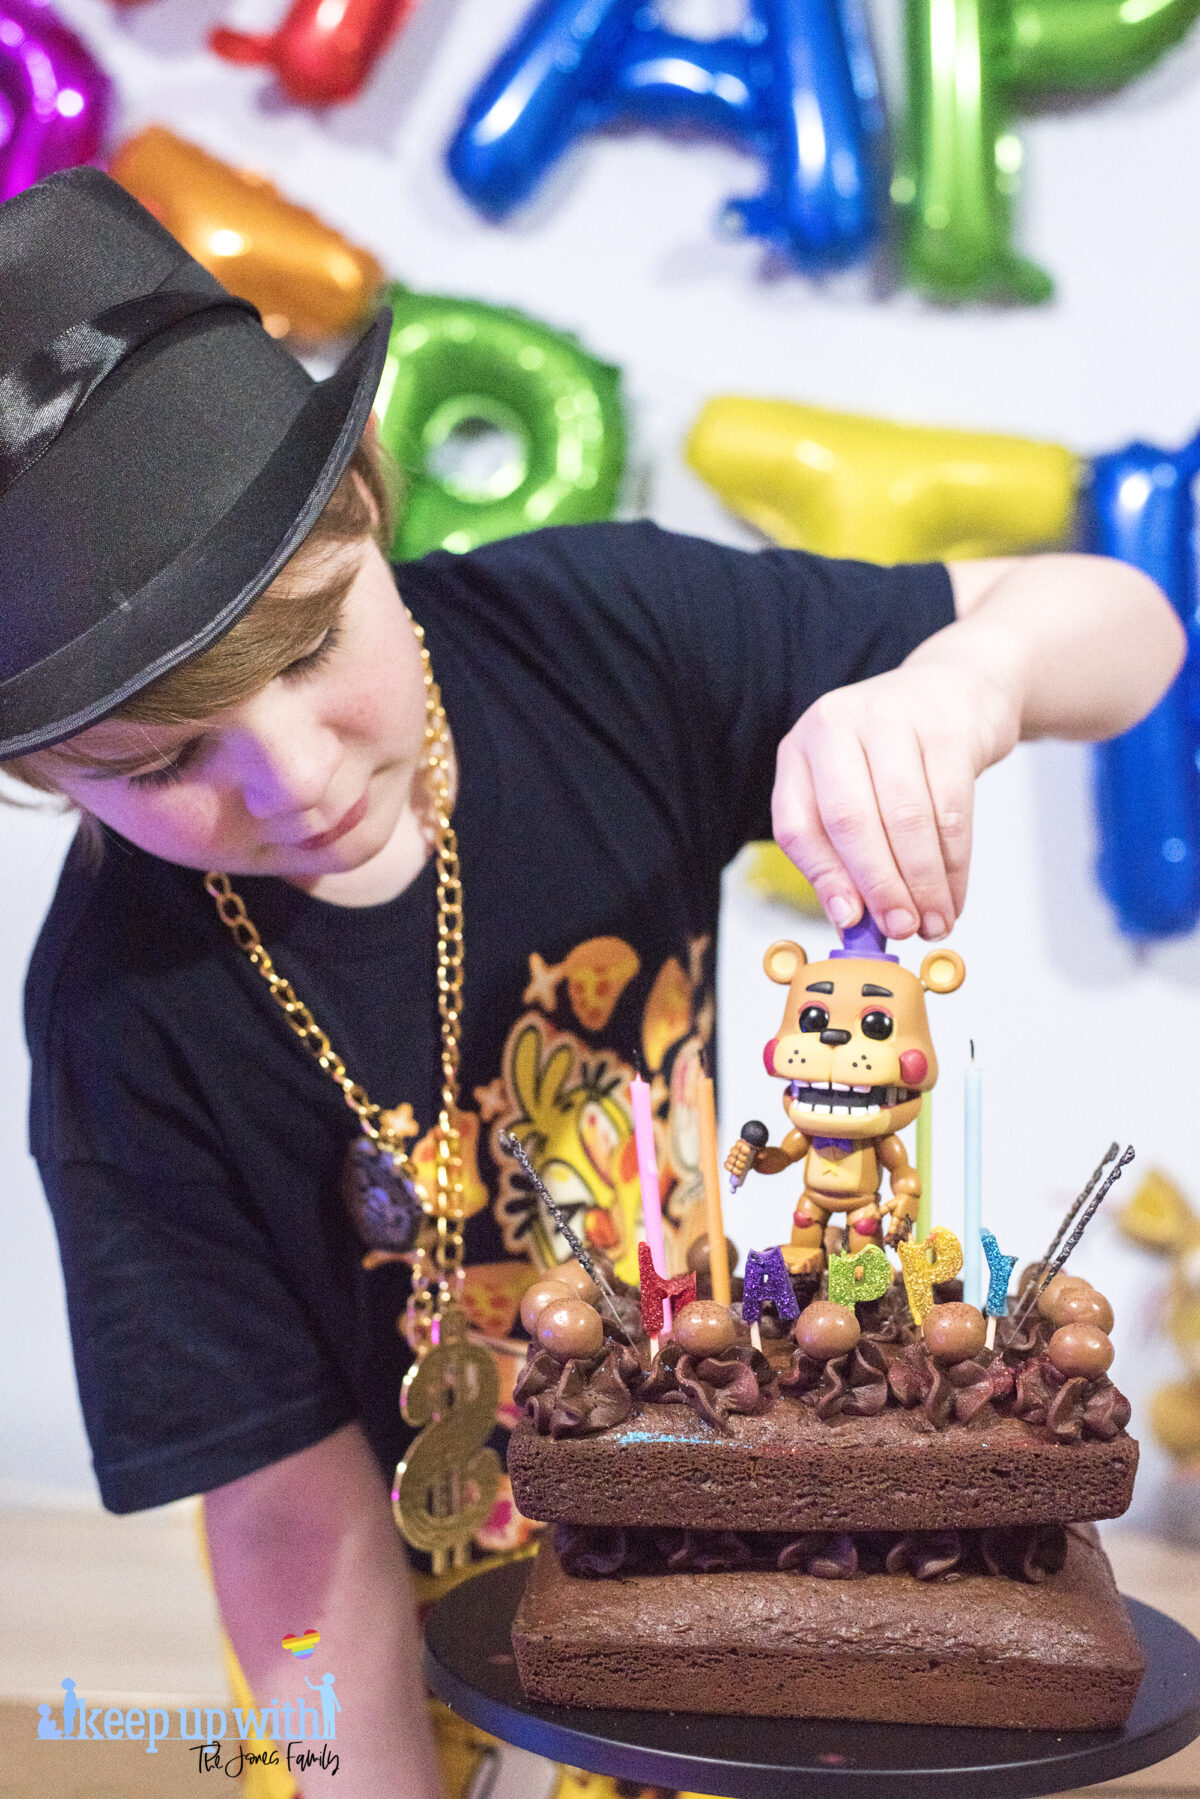 Image shows a blond haired boy wearing a black FNAF chica t-shirt and black top hat with a gold chain.   He is peering over a chocolate cake. He is lifting a Freddy Fazbear's Funko Pop Vinyl figure from Five Nights at Freddy's off the cake.